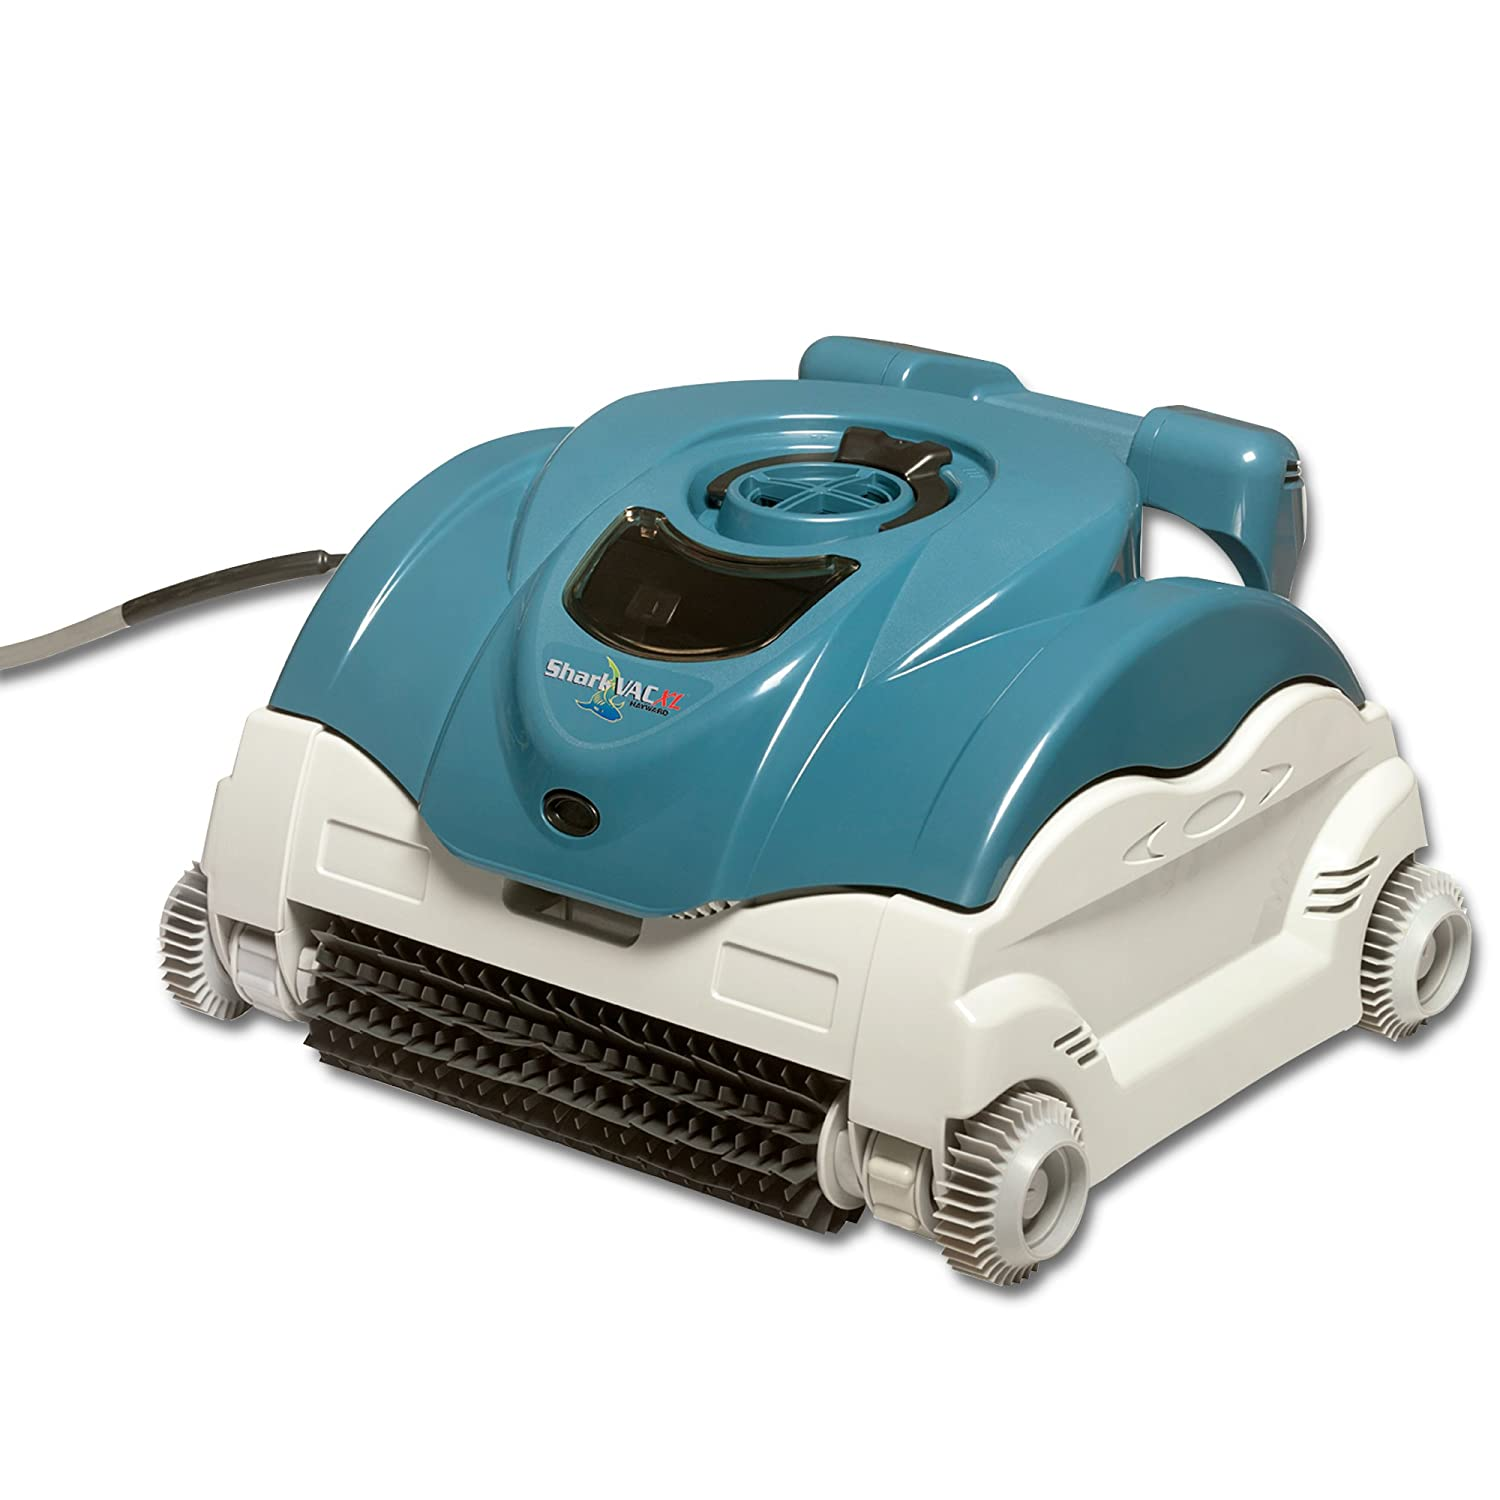 Hayward RC9740WC SharkVac XL